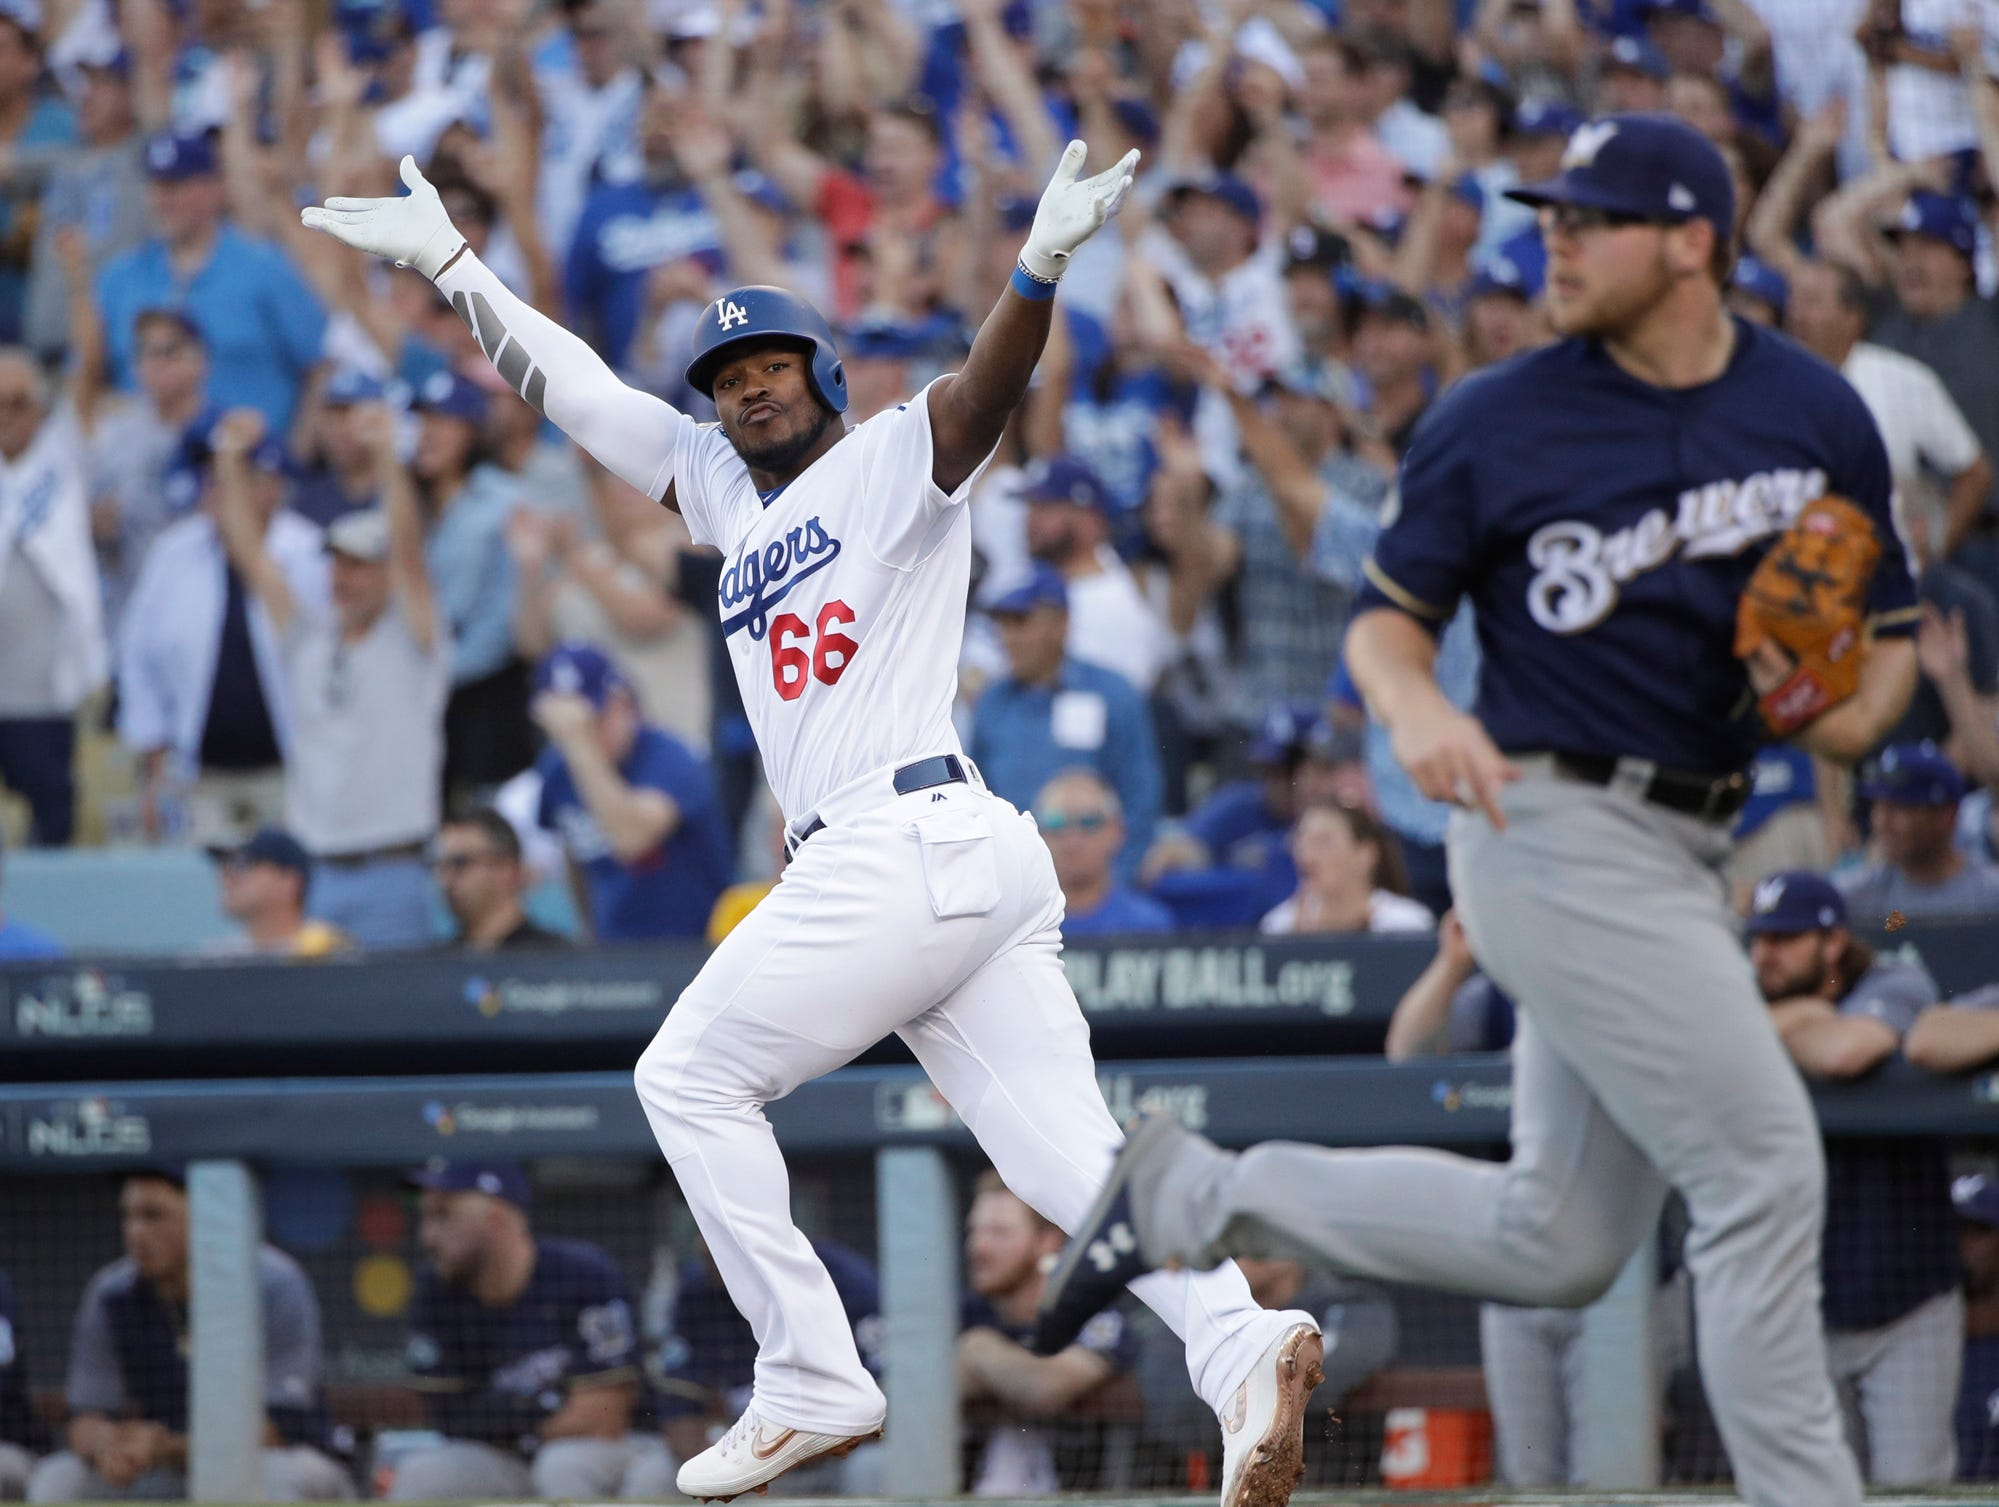 Los Angeles Dodgers' Yasiel Puig reacts after hitting an RBI single during the sixth inning of Game 5 of the National League Championship Series baseball game against the Milwaukee Brewers Wednesday, Oct. 17, 2018, in Los Angeles. (AP Photo/Jae Hong)